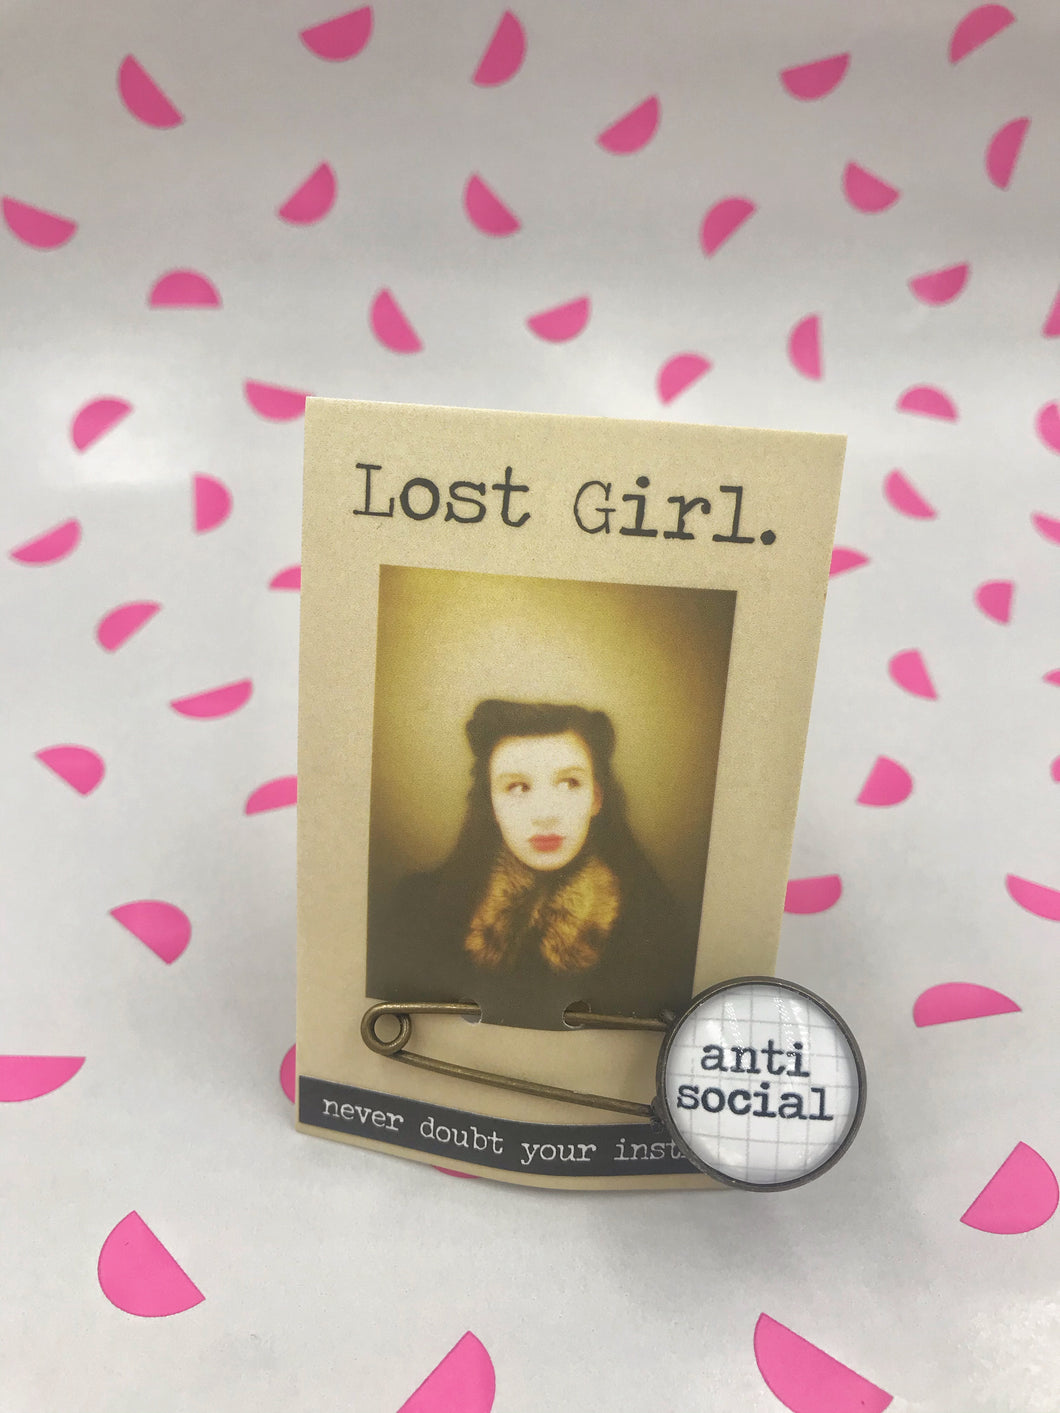 Lost Girl Pins - Anti Social